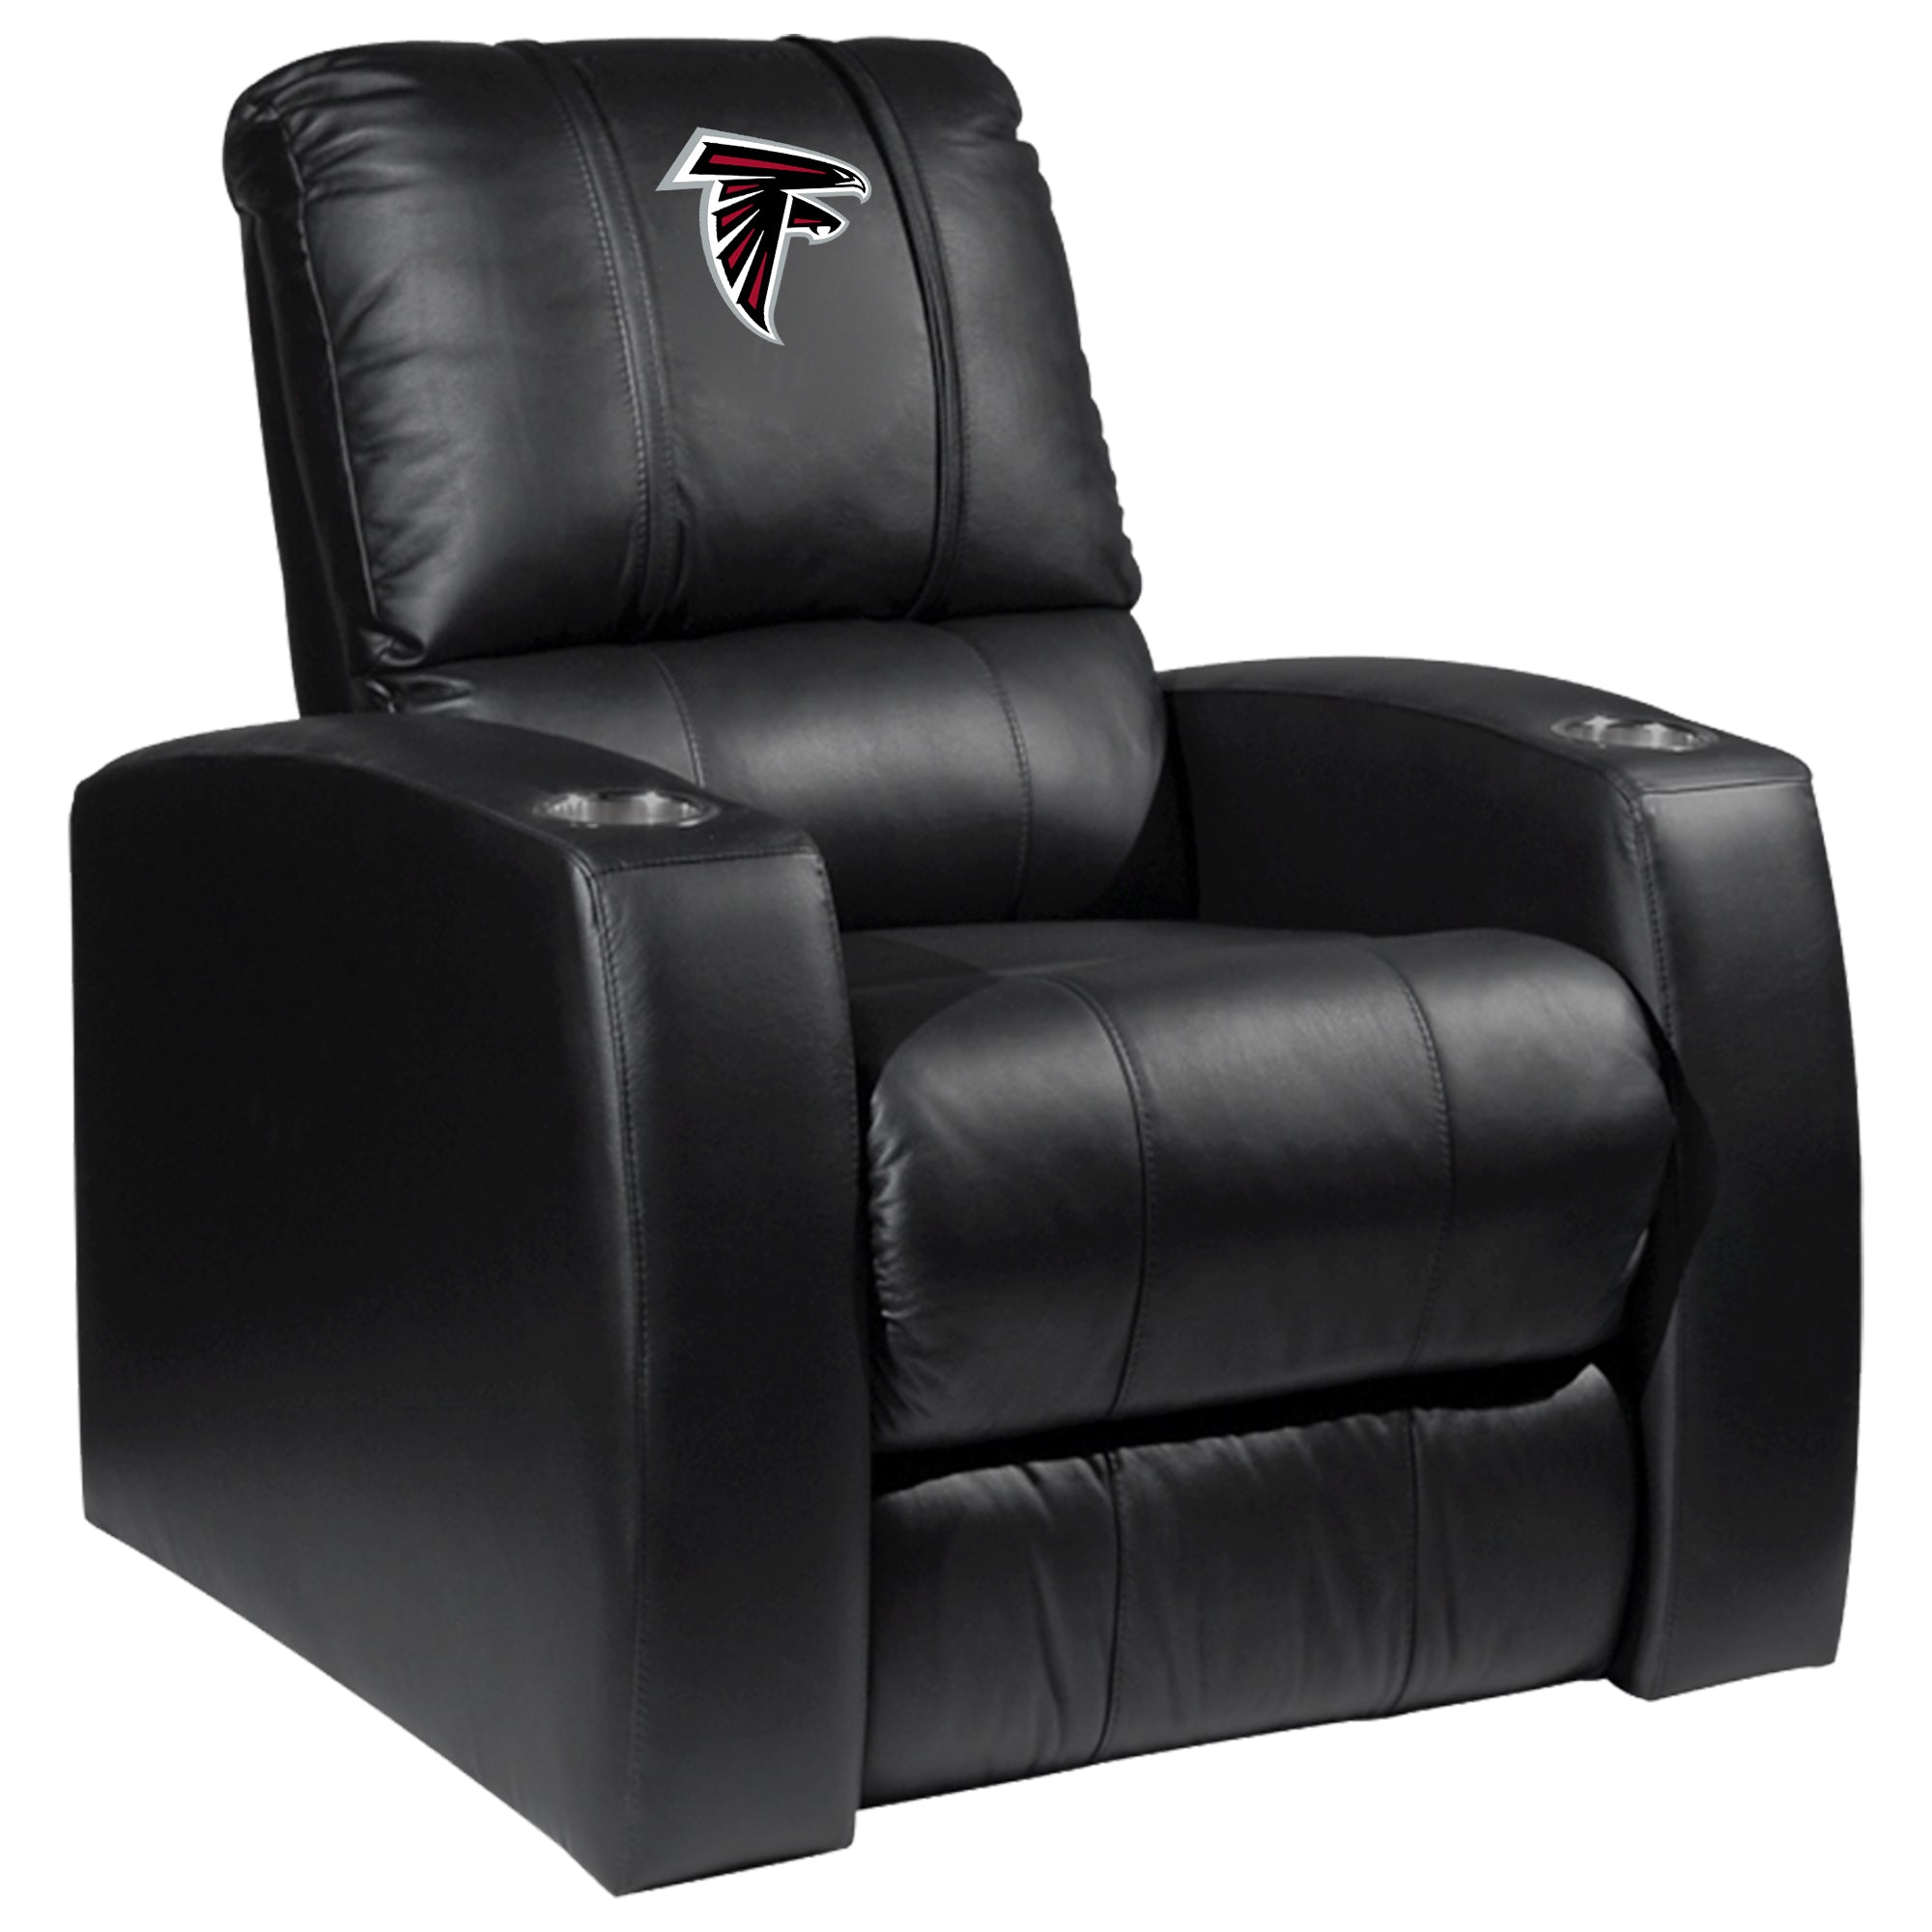 Relax Recliner with Atlanta Falcons Primary Logo